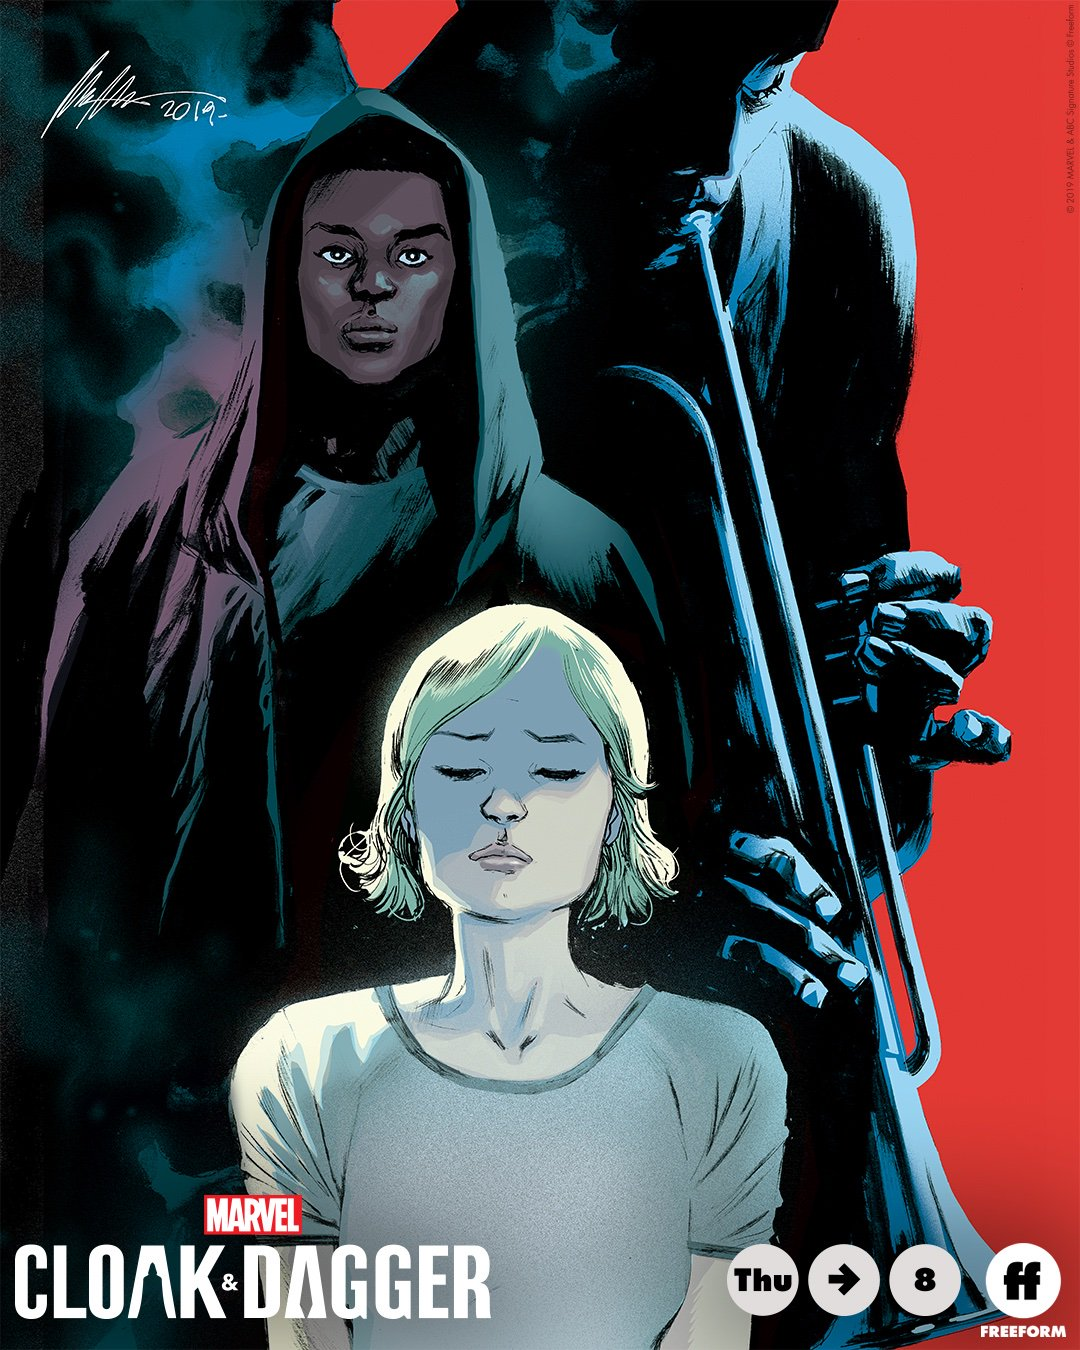 Cloak and Dagger Season 2 Episode 7 Poster